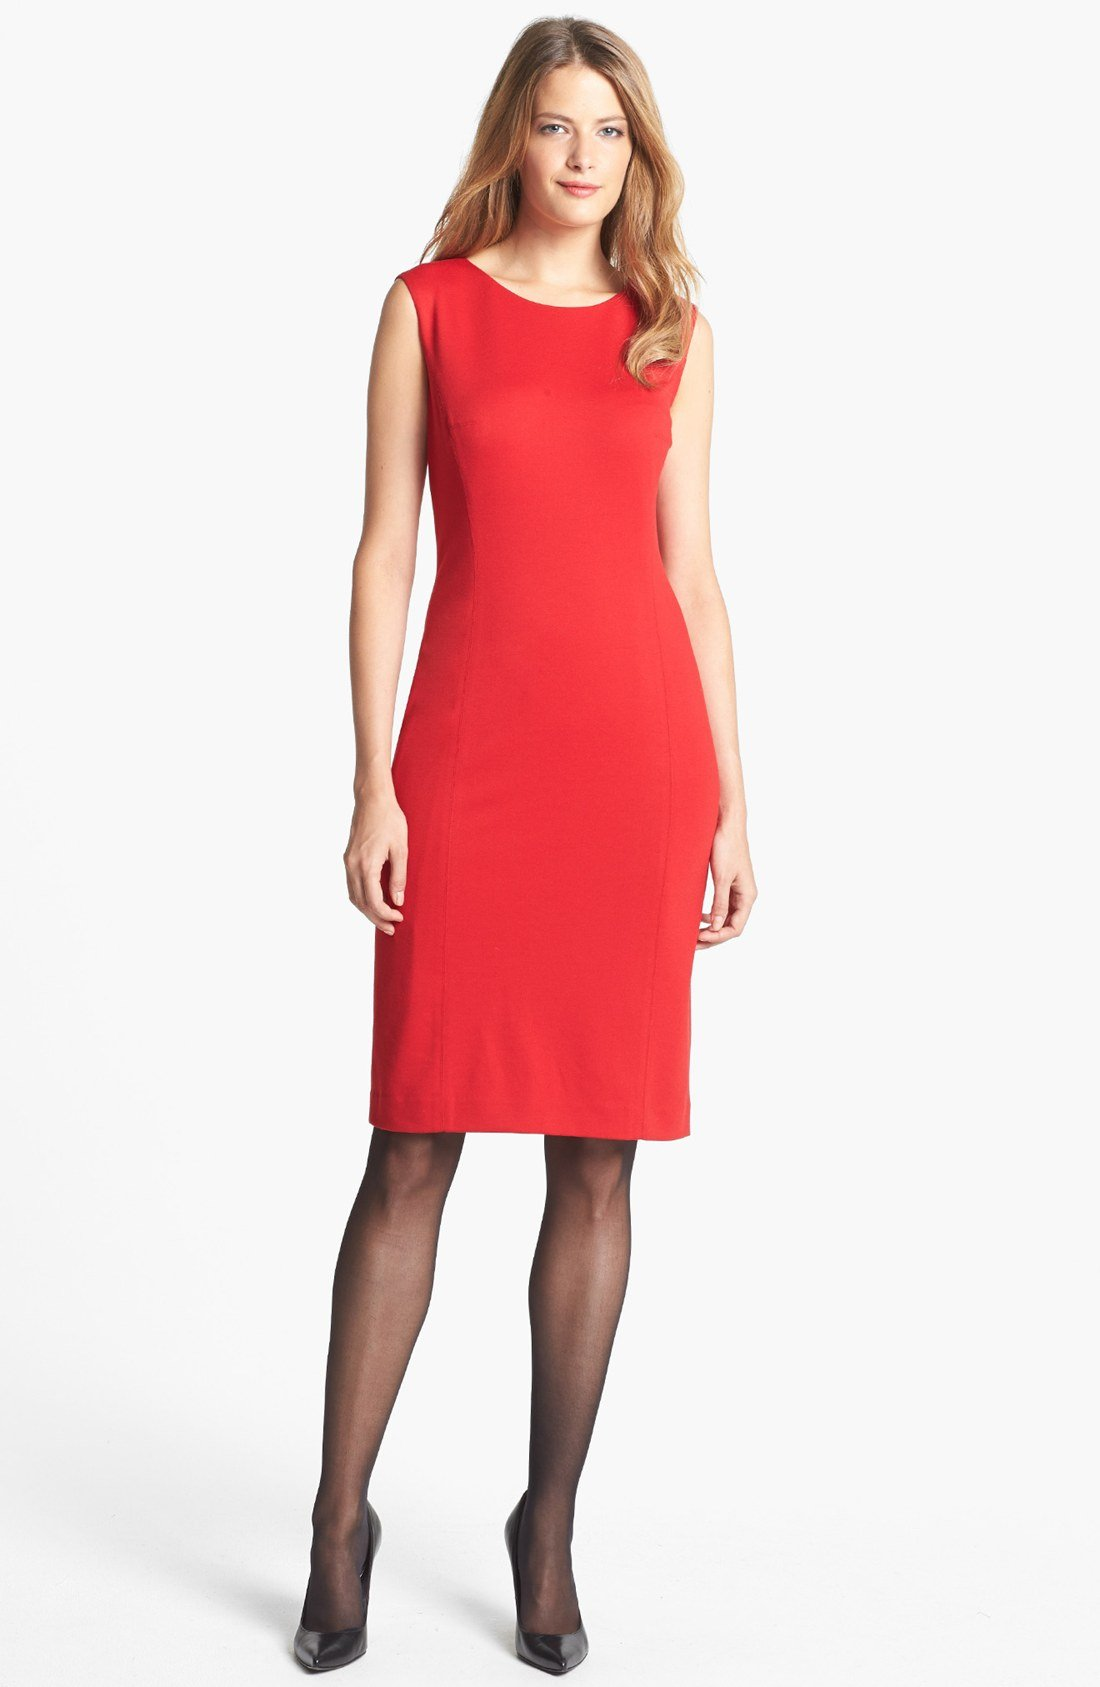 jones new york mallory ponte sheath dress in red lyst. Black Bedroom Furniture Sets. Home Design Ideas